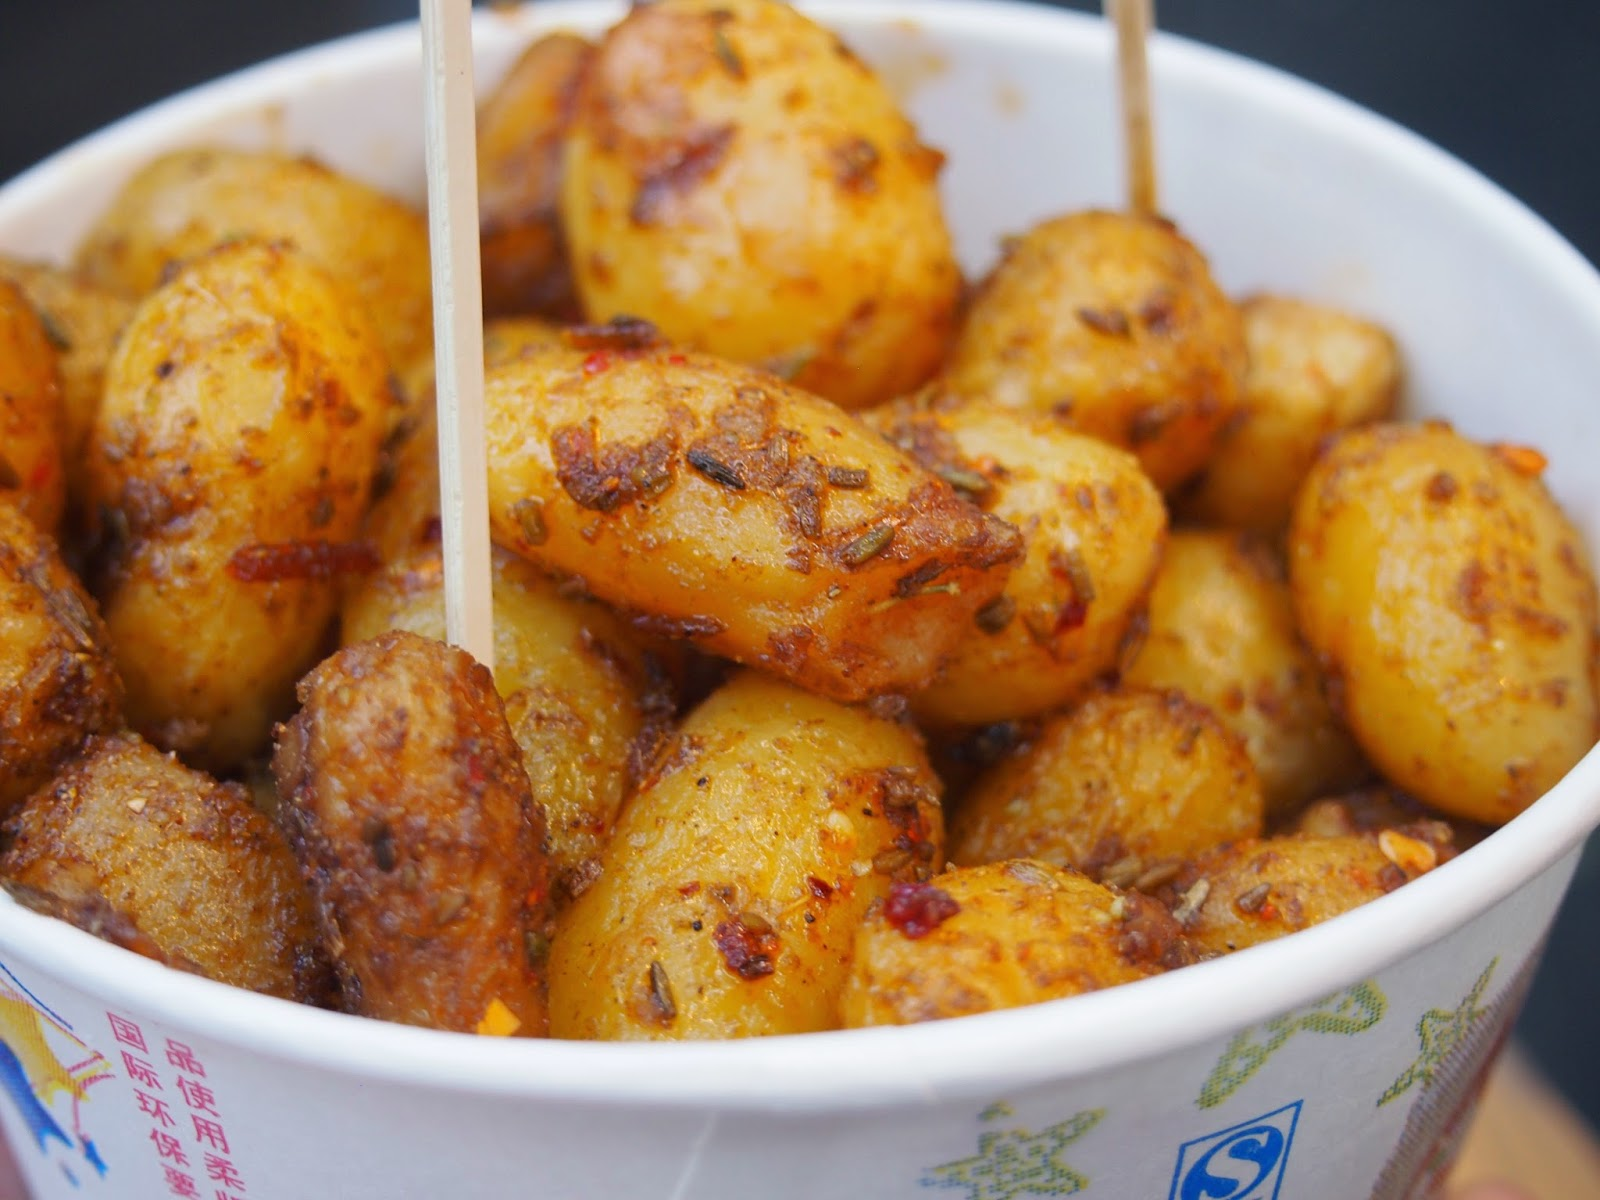 spicy potatoes for a snack